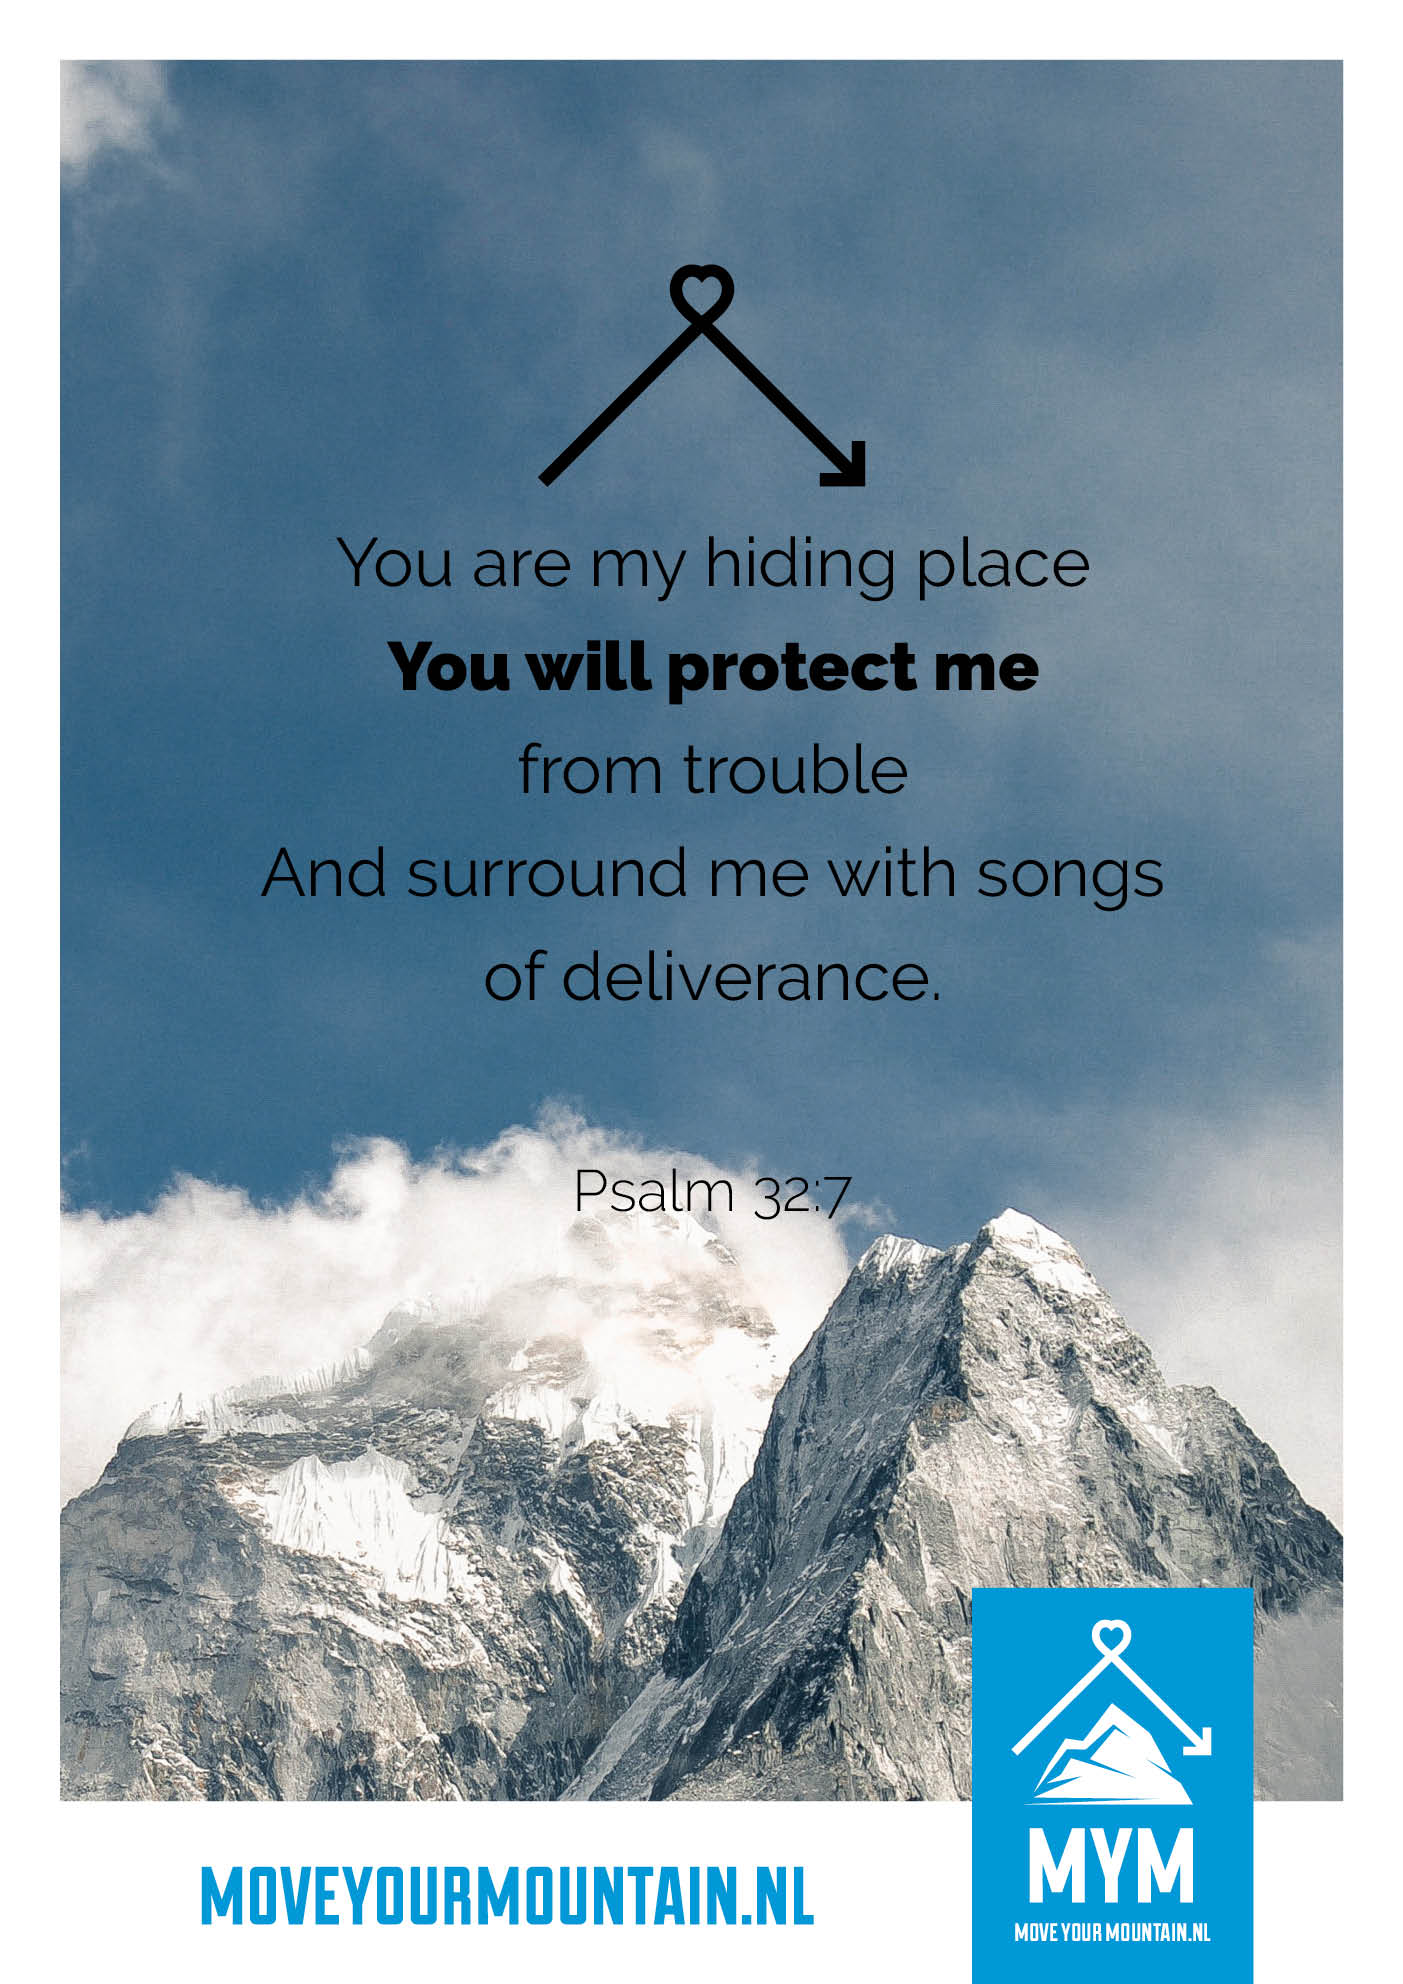 You are my hiding place. You will protect me drom trouble and surround me with songs of deliverance